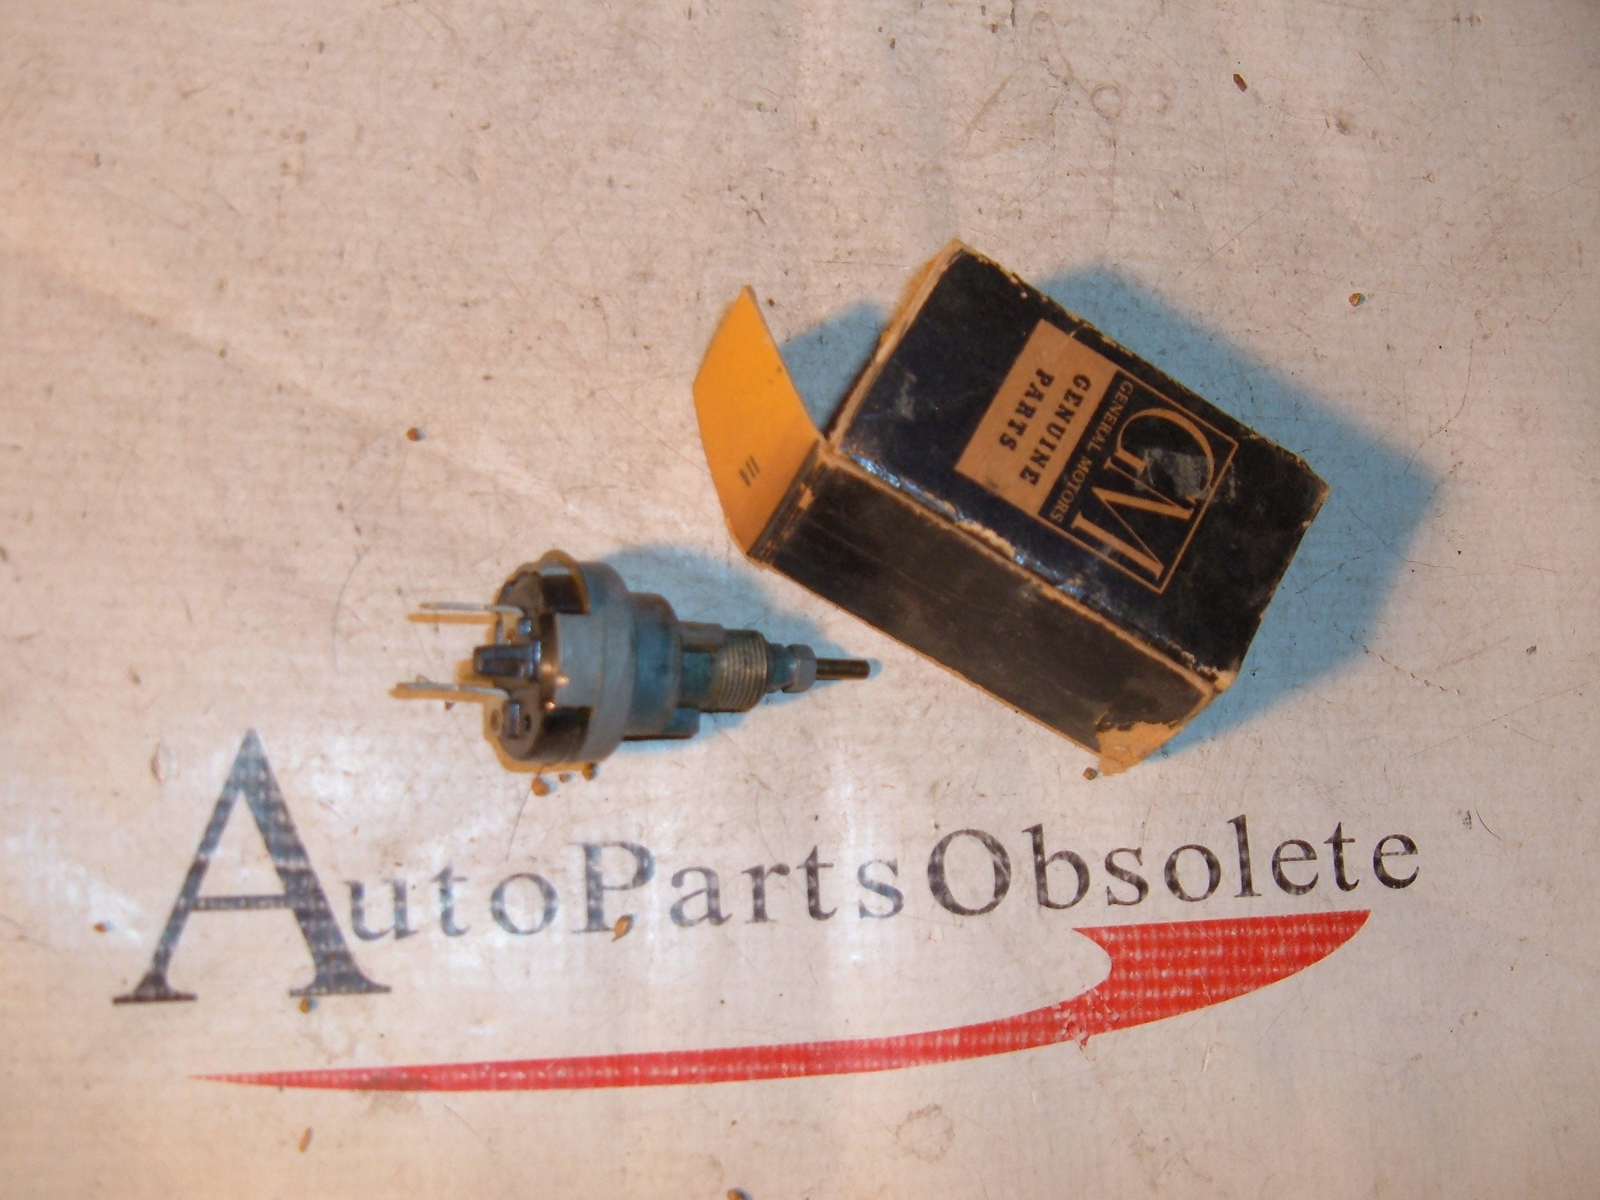 1962 1963 oldsmobile cutlass f-85 windshield wiper switch nos gm # 1993568 (z 1993568)